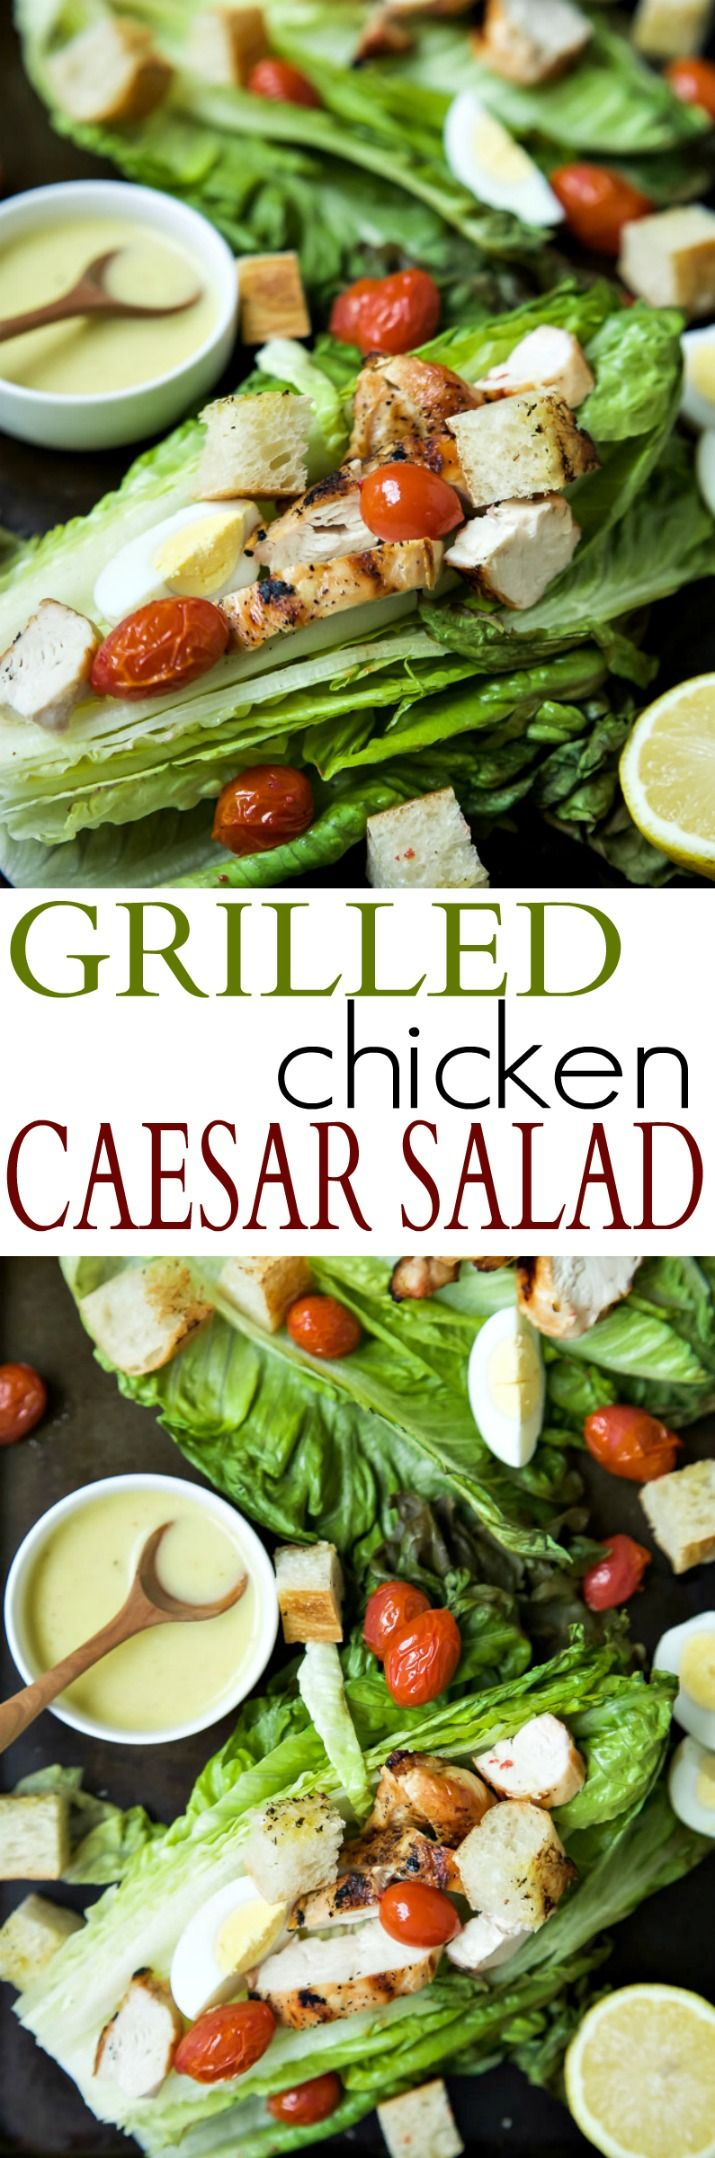 Grilled Chicken Caesar Salad with a Light Caesar Dressing that is egg and anchovy free! This Salad takes 15 minutes to make, is 289 calories a serving, and you can't beat that dynamite grill flavor infused throughout this dish! | joyfulhealthyeats.com